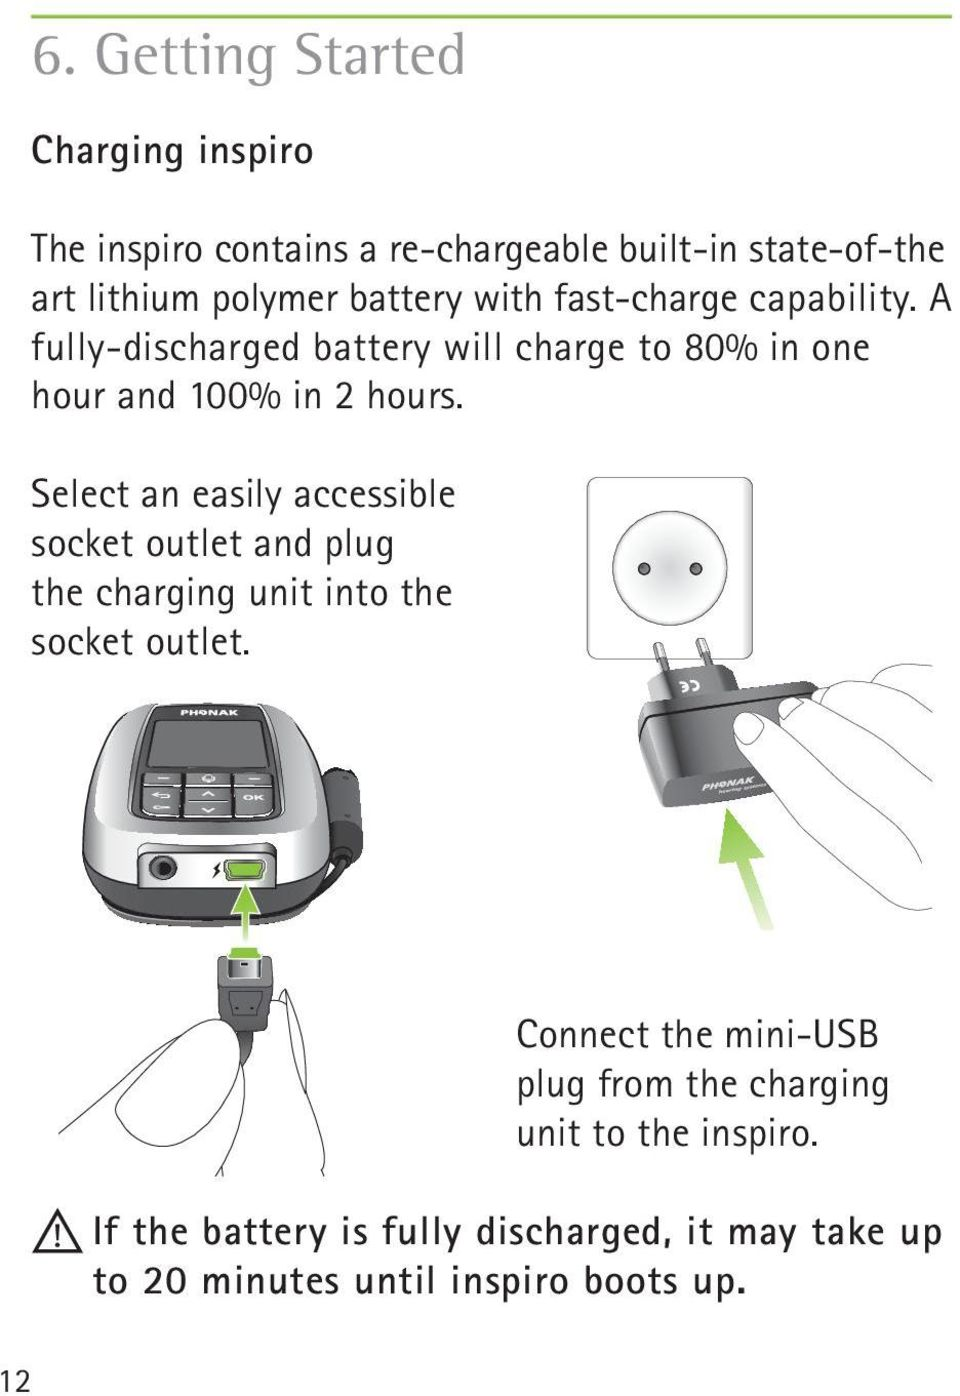 Select an easily accessible socket outlet and plug the charging unit into the socket outlet.